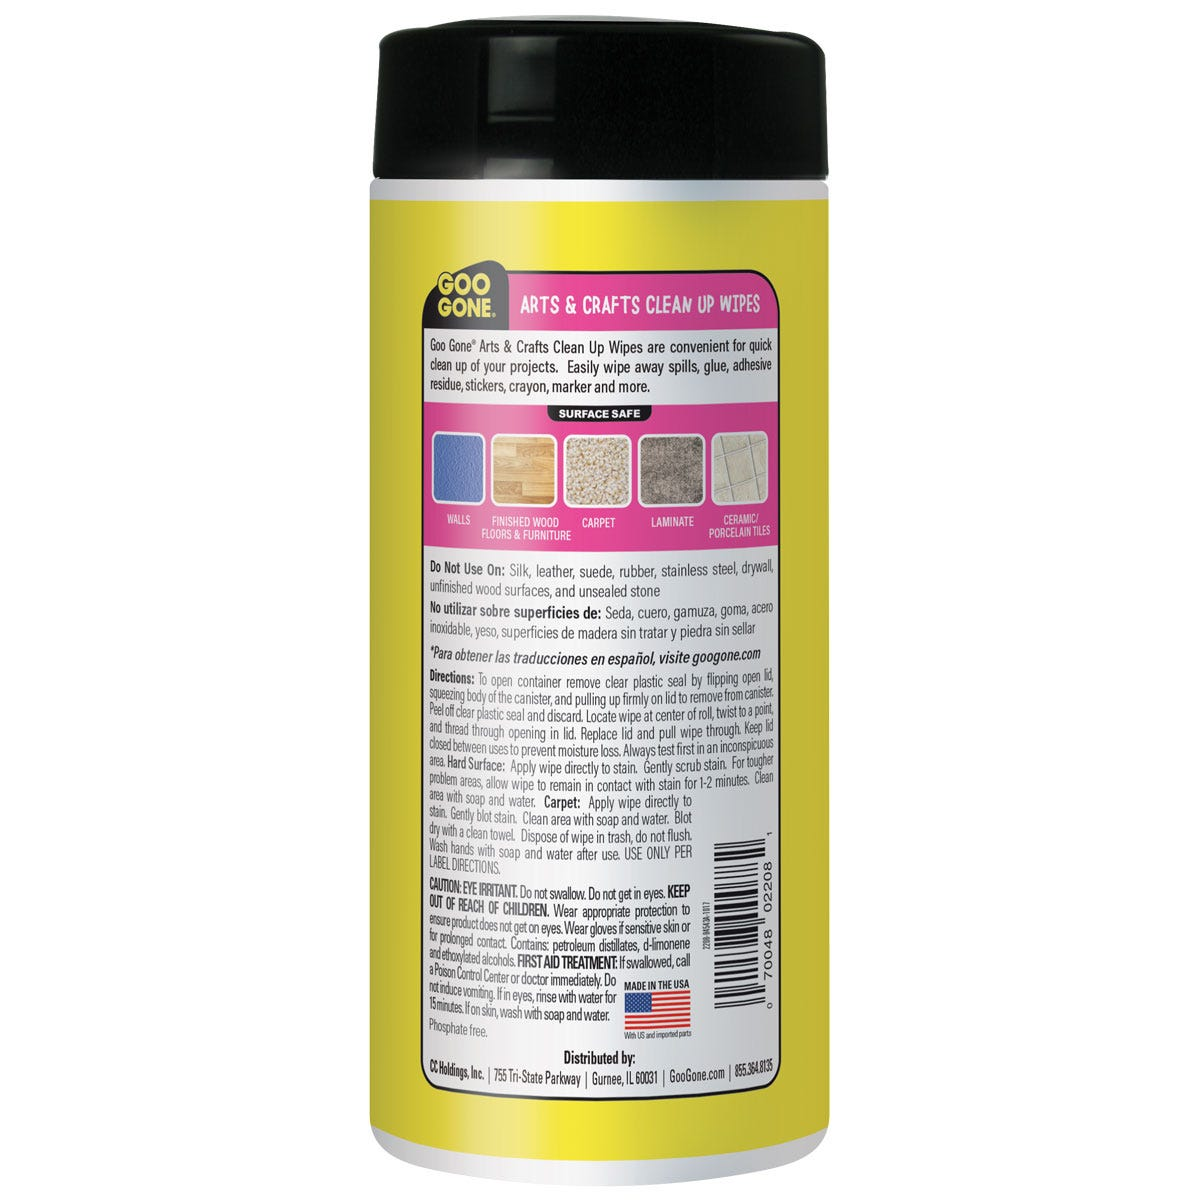 https://googone.com/media/catalog/product/a/r/arts-_-craft-adhesive-wipes_back.jpg